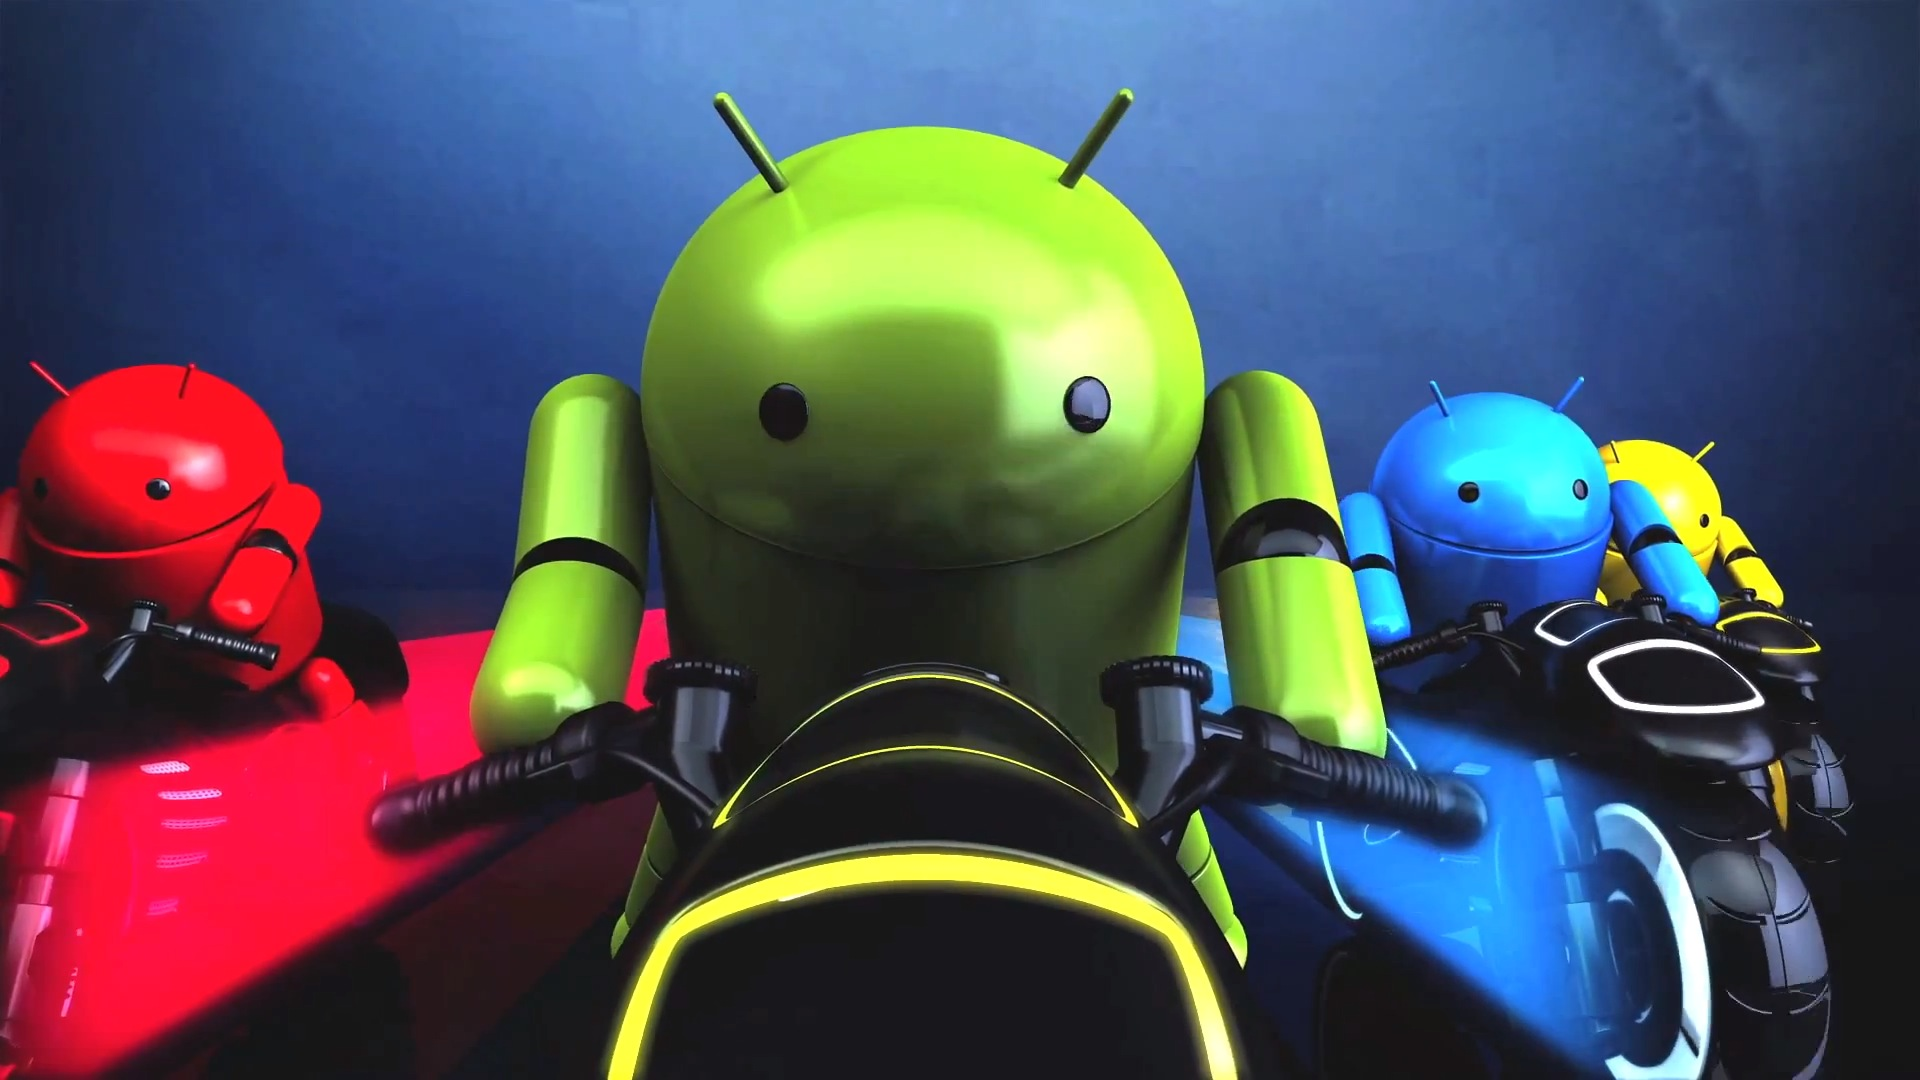 Free Download 3D Game For Android 4.0